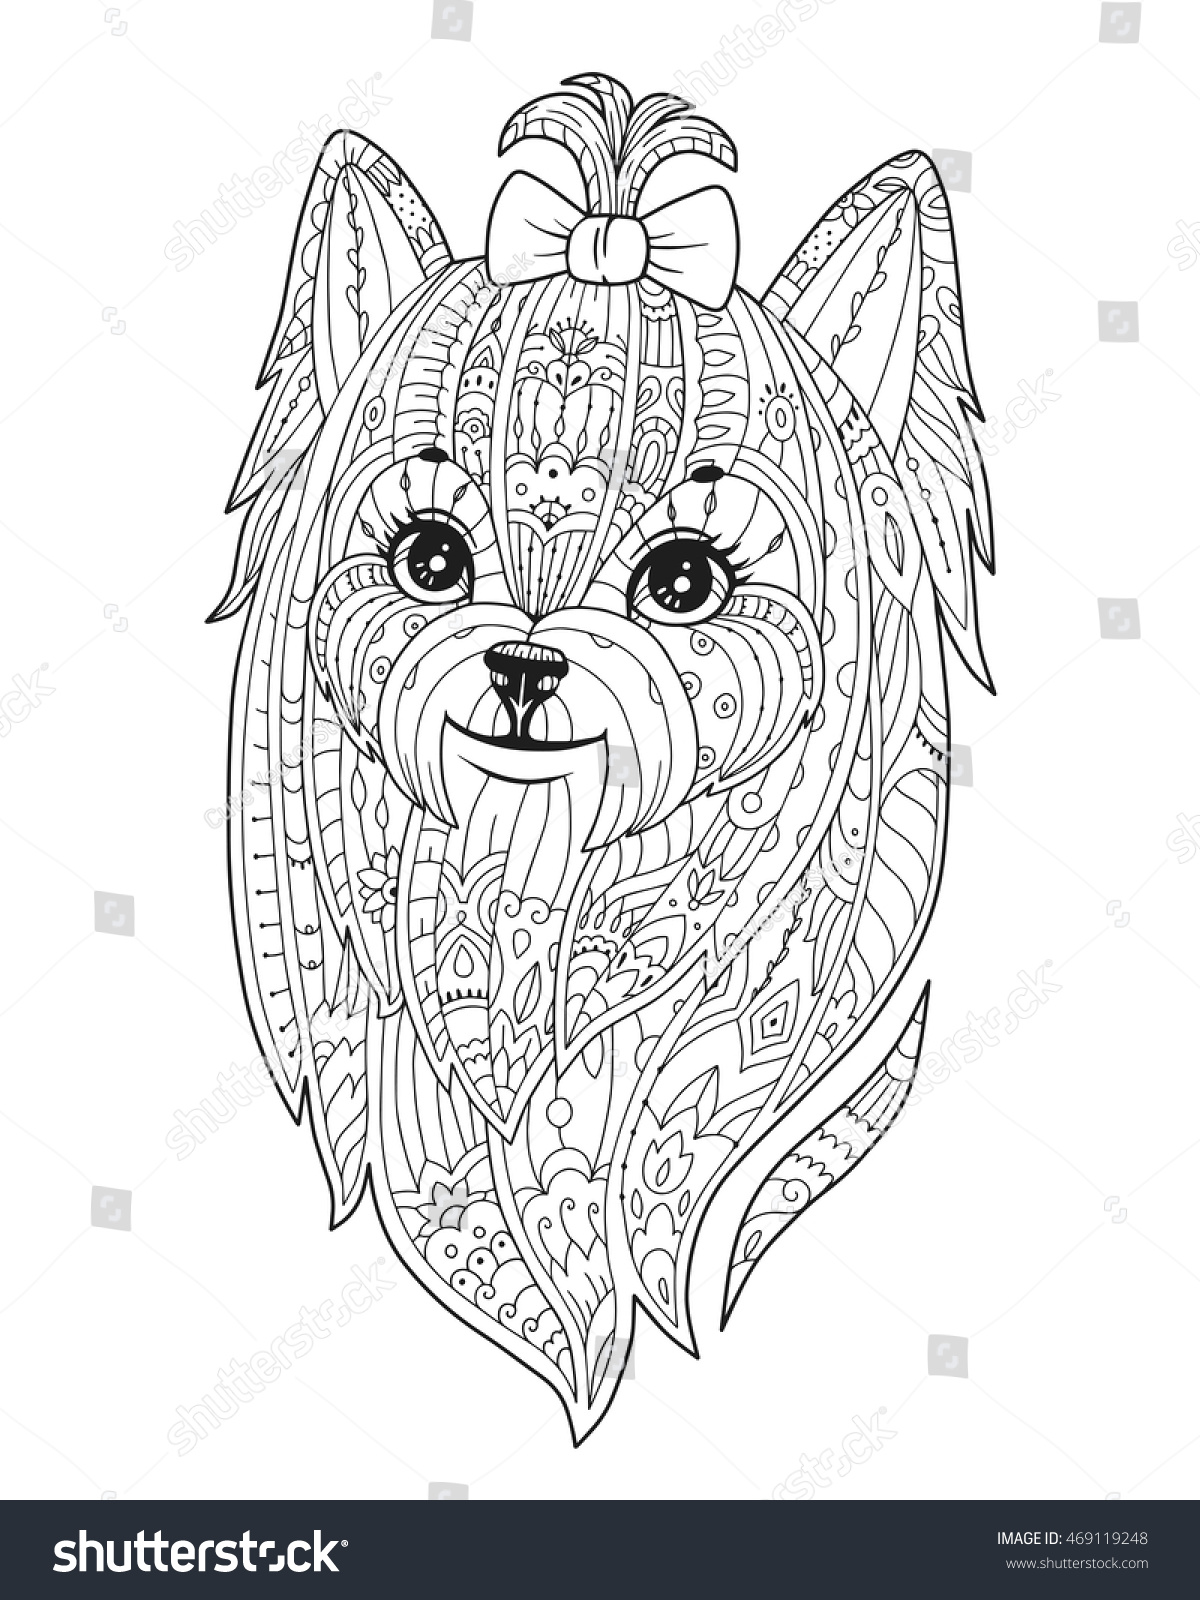 Teacup And Dog Adult Coloring Page | Printable Puppy Coloring Pages ...